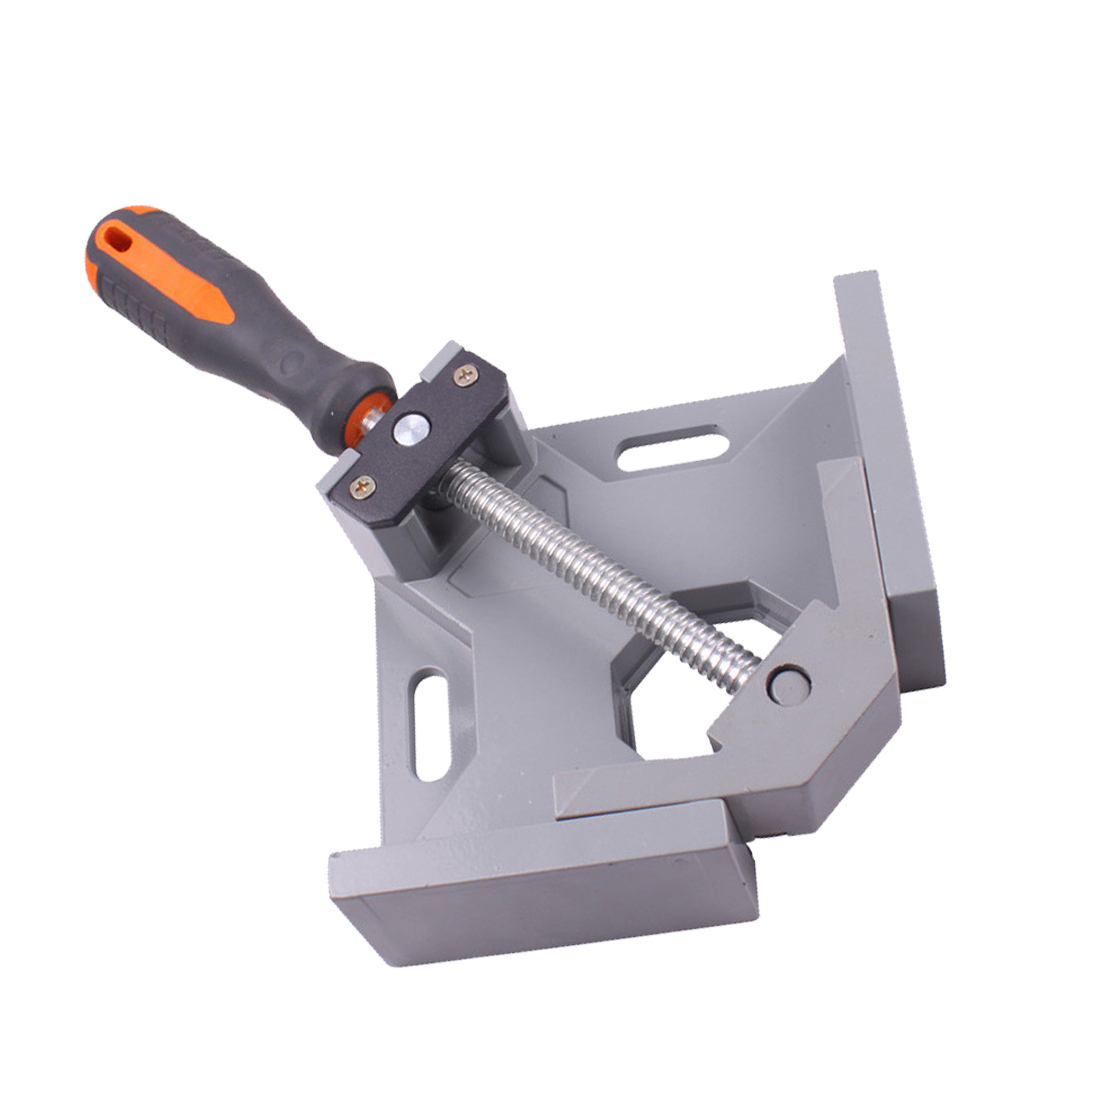 Hot 90 dgree Right Angle Carbide Vice Clamps Woodworking Clip Photo Frame Gussets Tools ninth world new single handlealuminum 90 degree right angle clamp angle clamp woodworking frame clip right angle folder tool